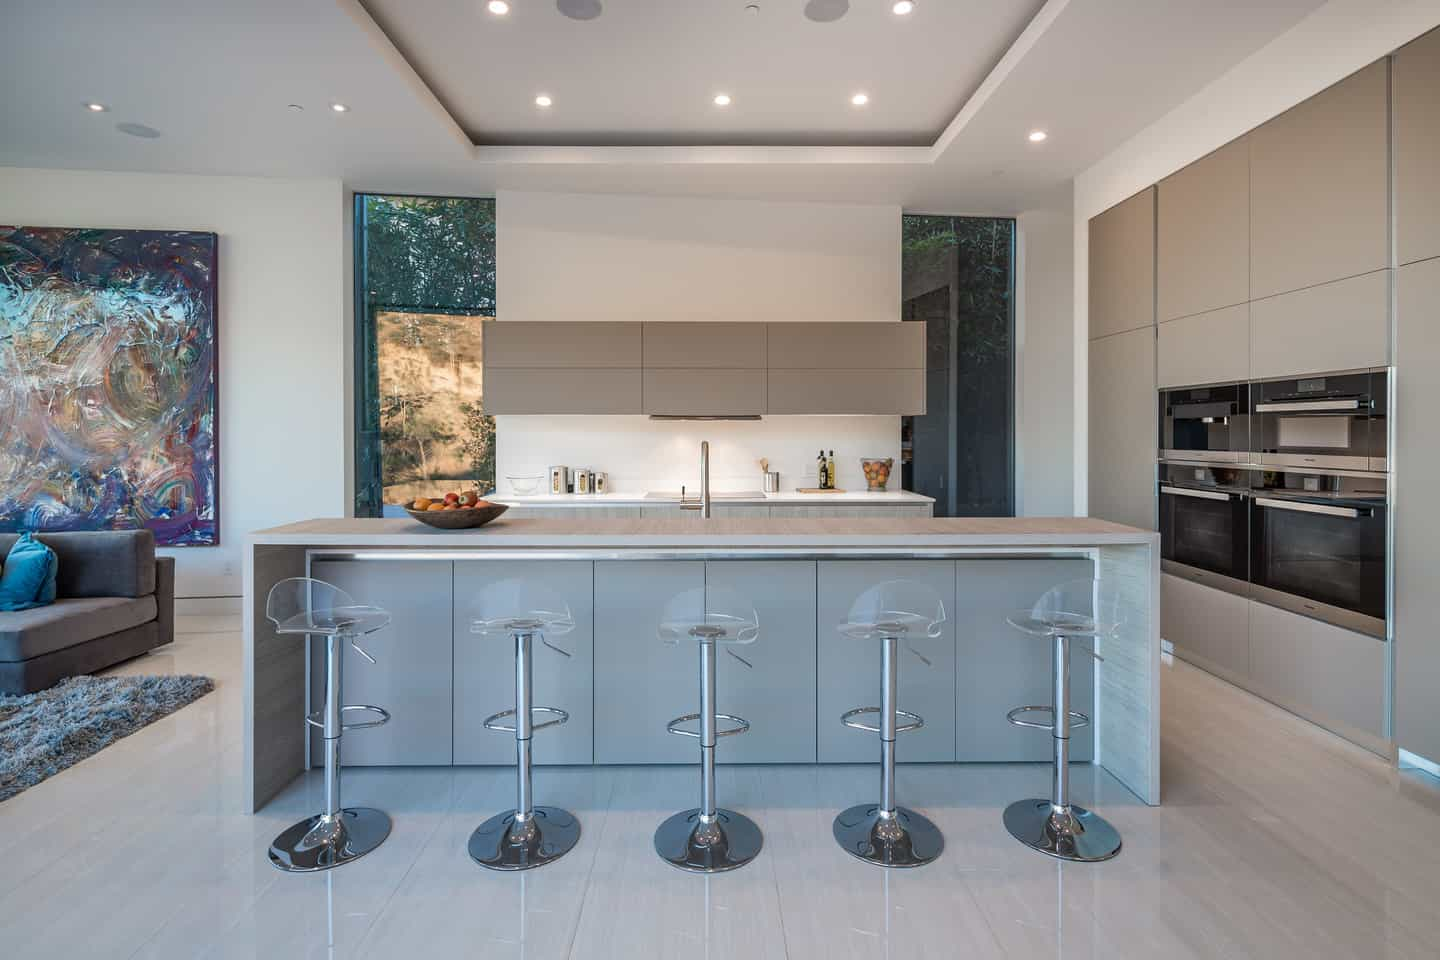 Architecture-Contemporary-Residence-Noesis Group-08-1 Kindesign